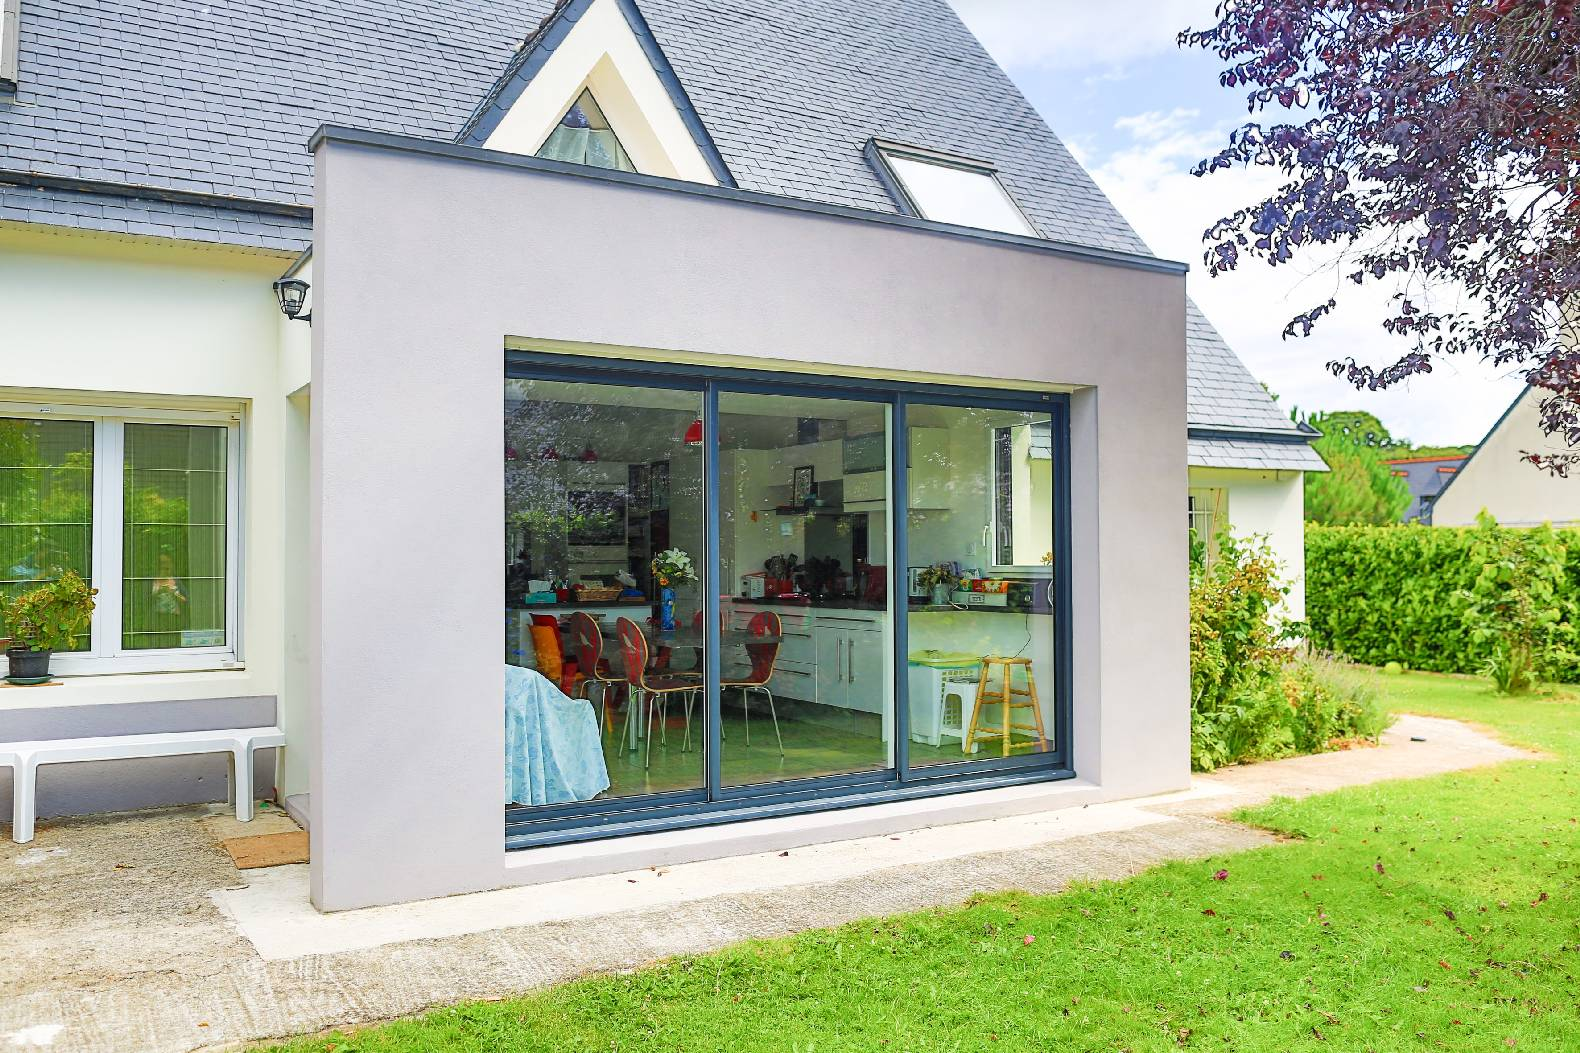 Extension et r novation d 39 une maison de ville concarneau goalabre construction - Extension cuisine ...